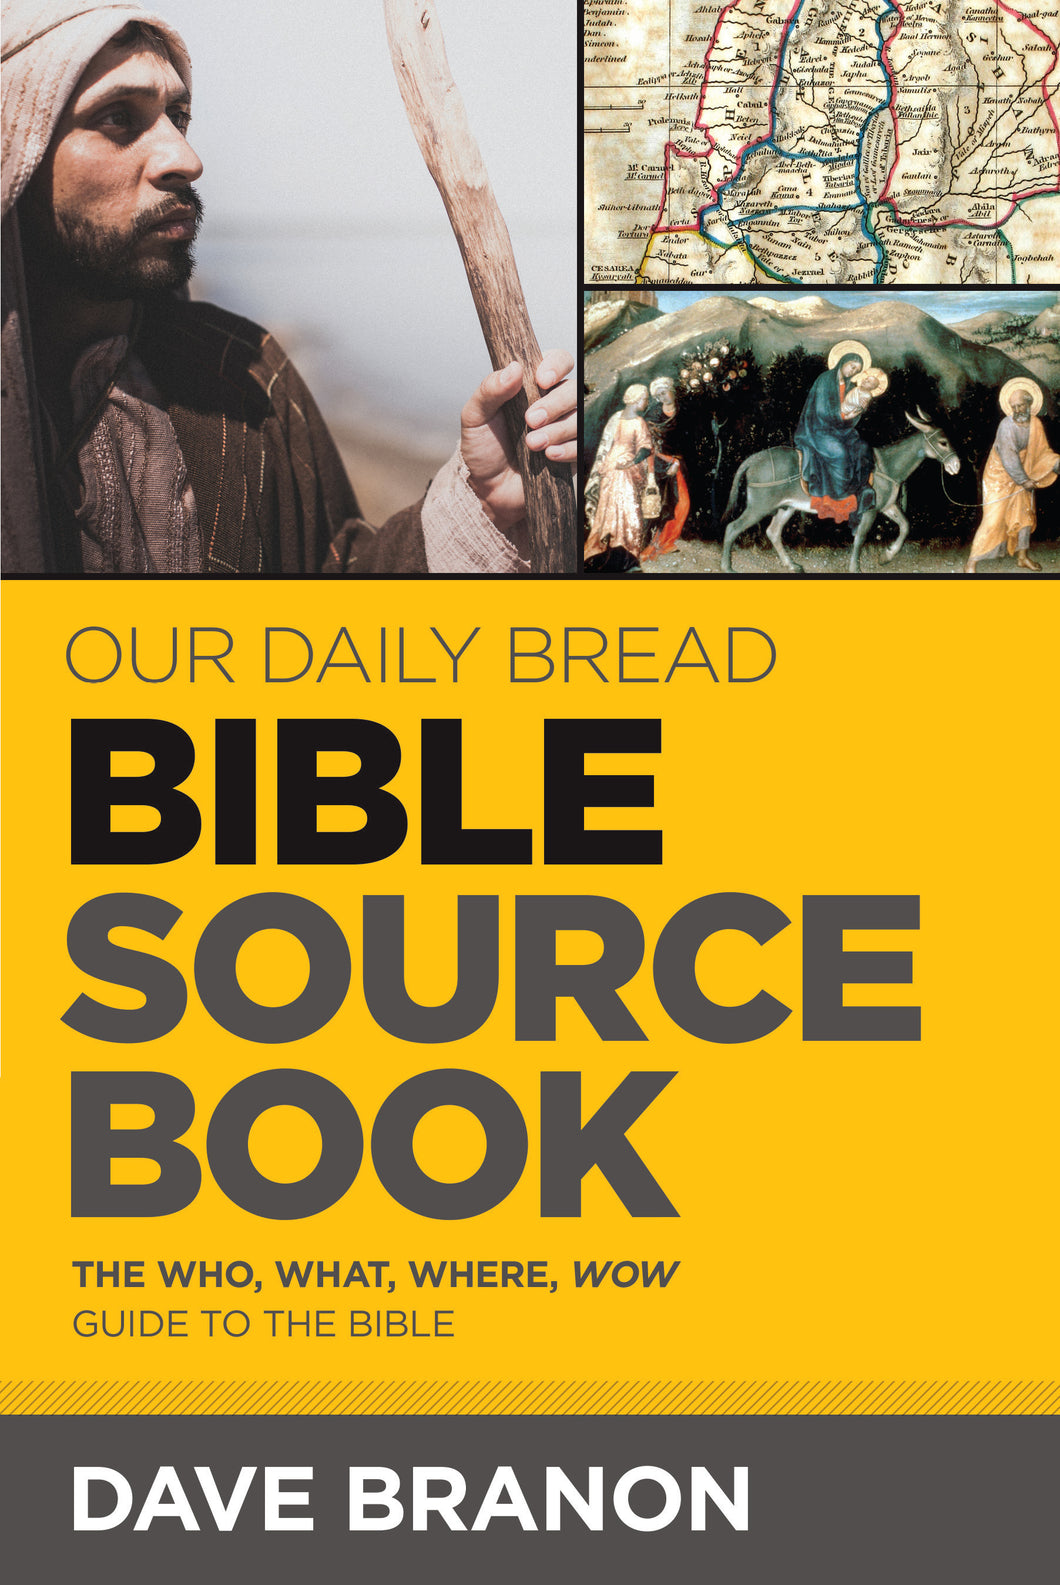 Our Daily Bread Bible Sourcebook [E-book]